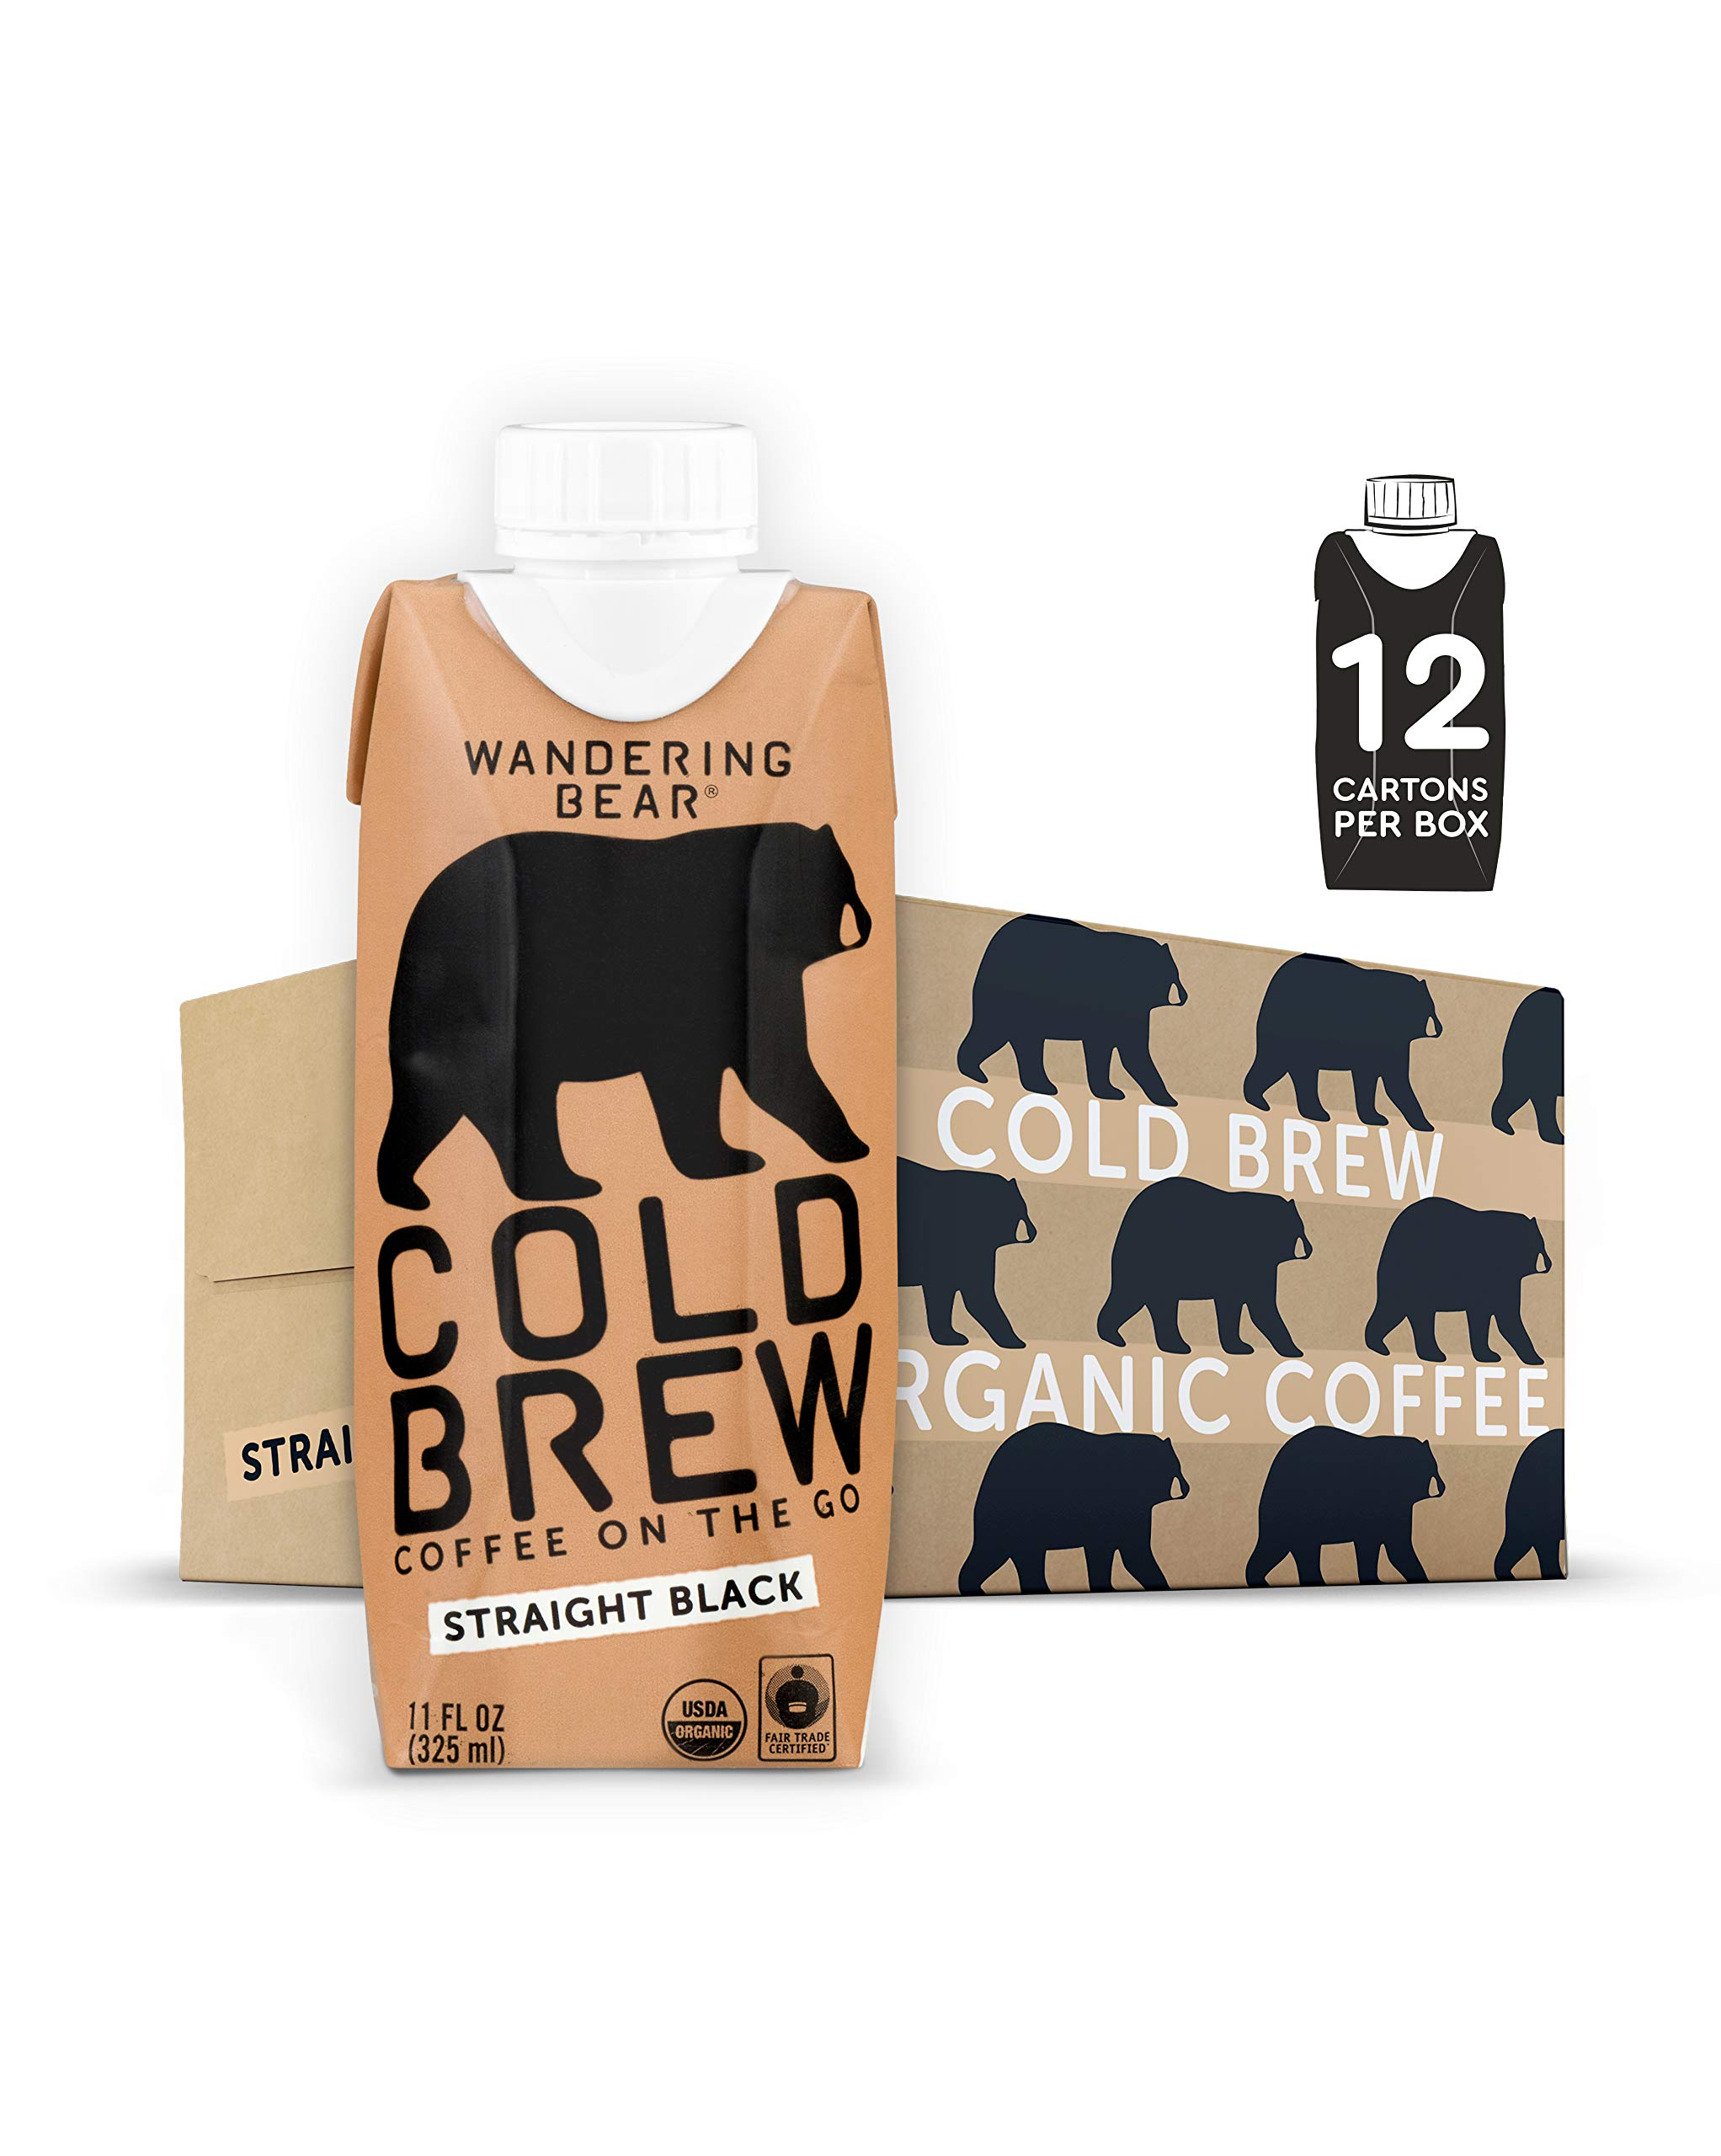 Wandering Bear Organic Cold Brew Coffee On-the-Go 11 oz Carton, Straight Black, No Sugar, Ready to Drink, Not a Concentrate (Pack of 12) by Wandering Bear